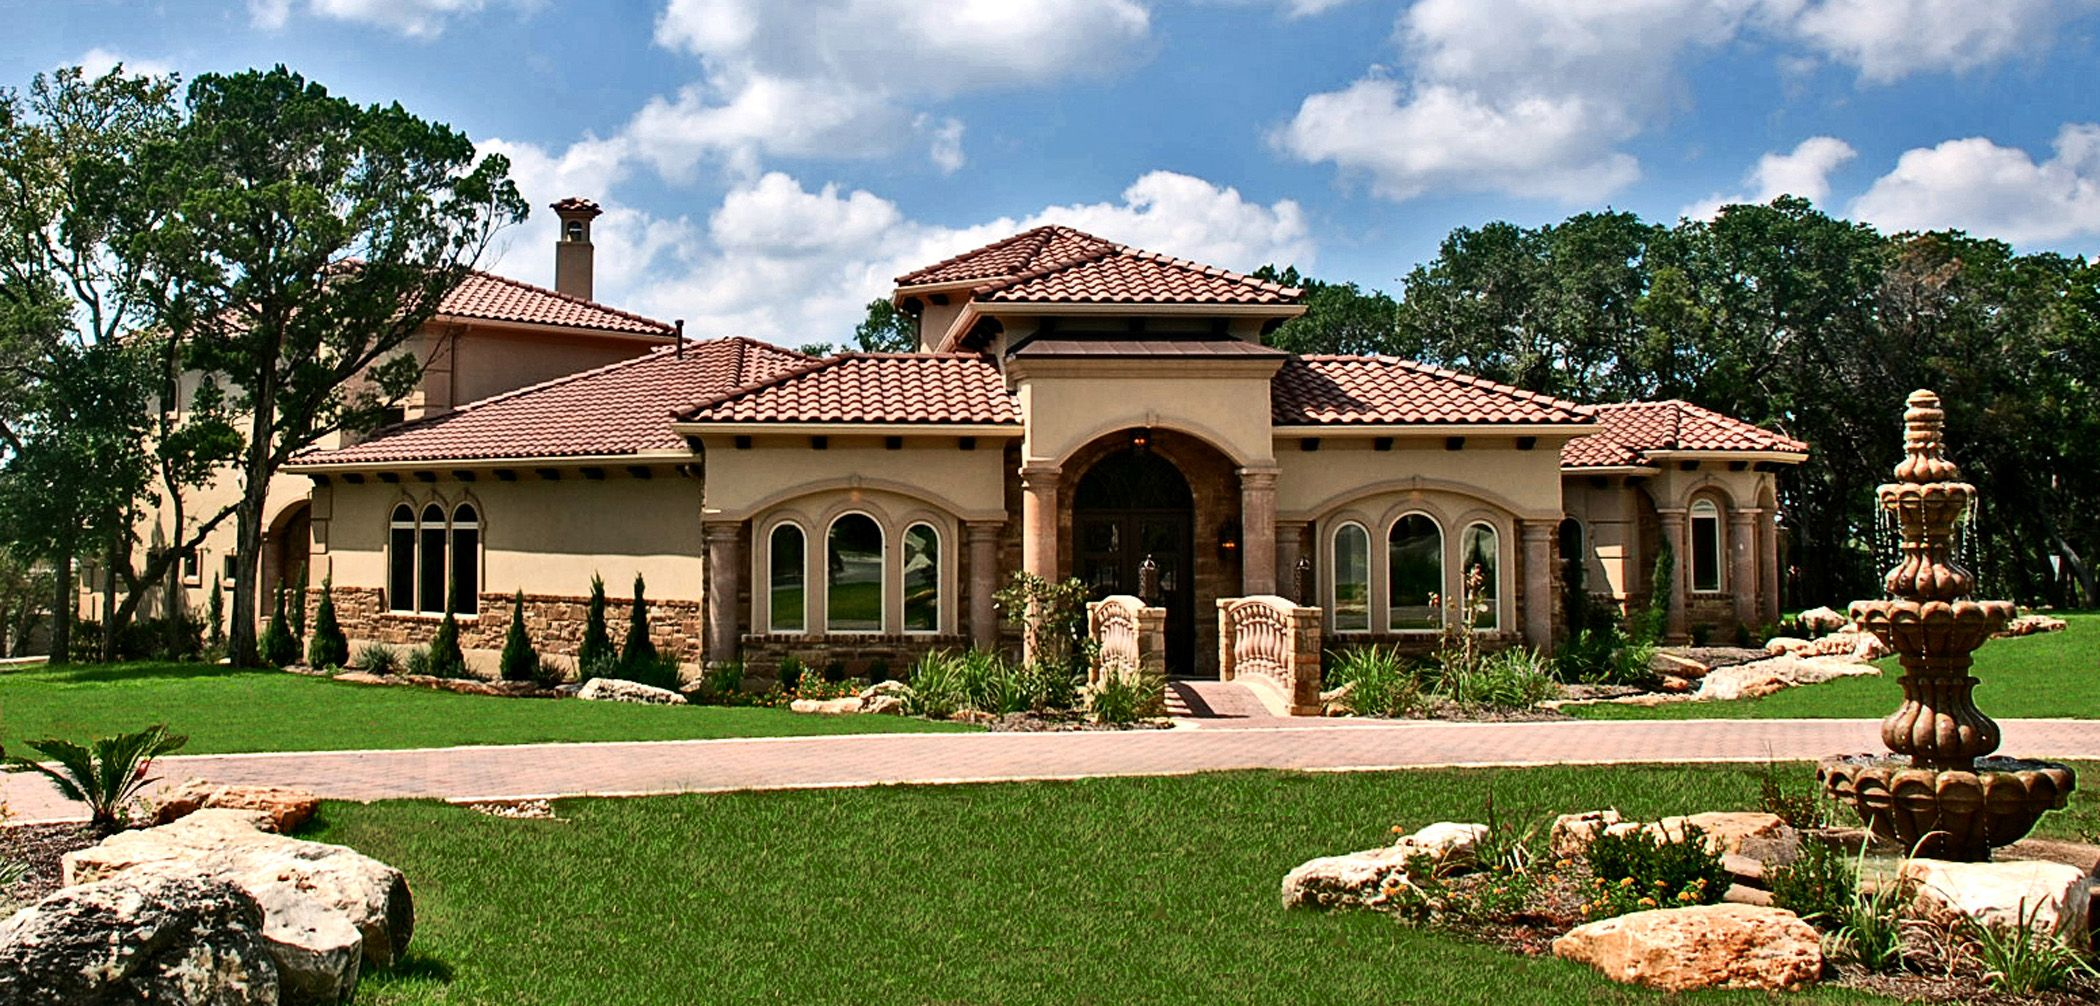 Lakeway Texas Tuscan Front Elevation By Zbranek Holt